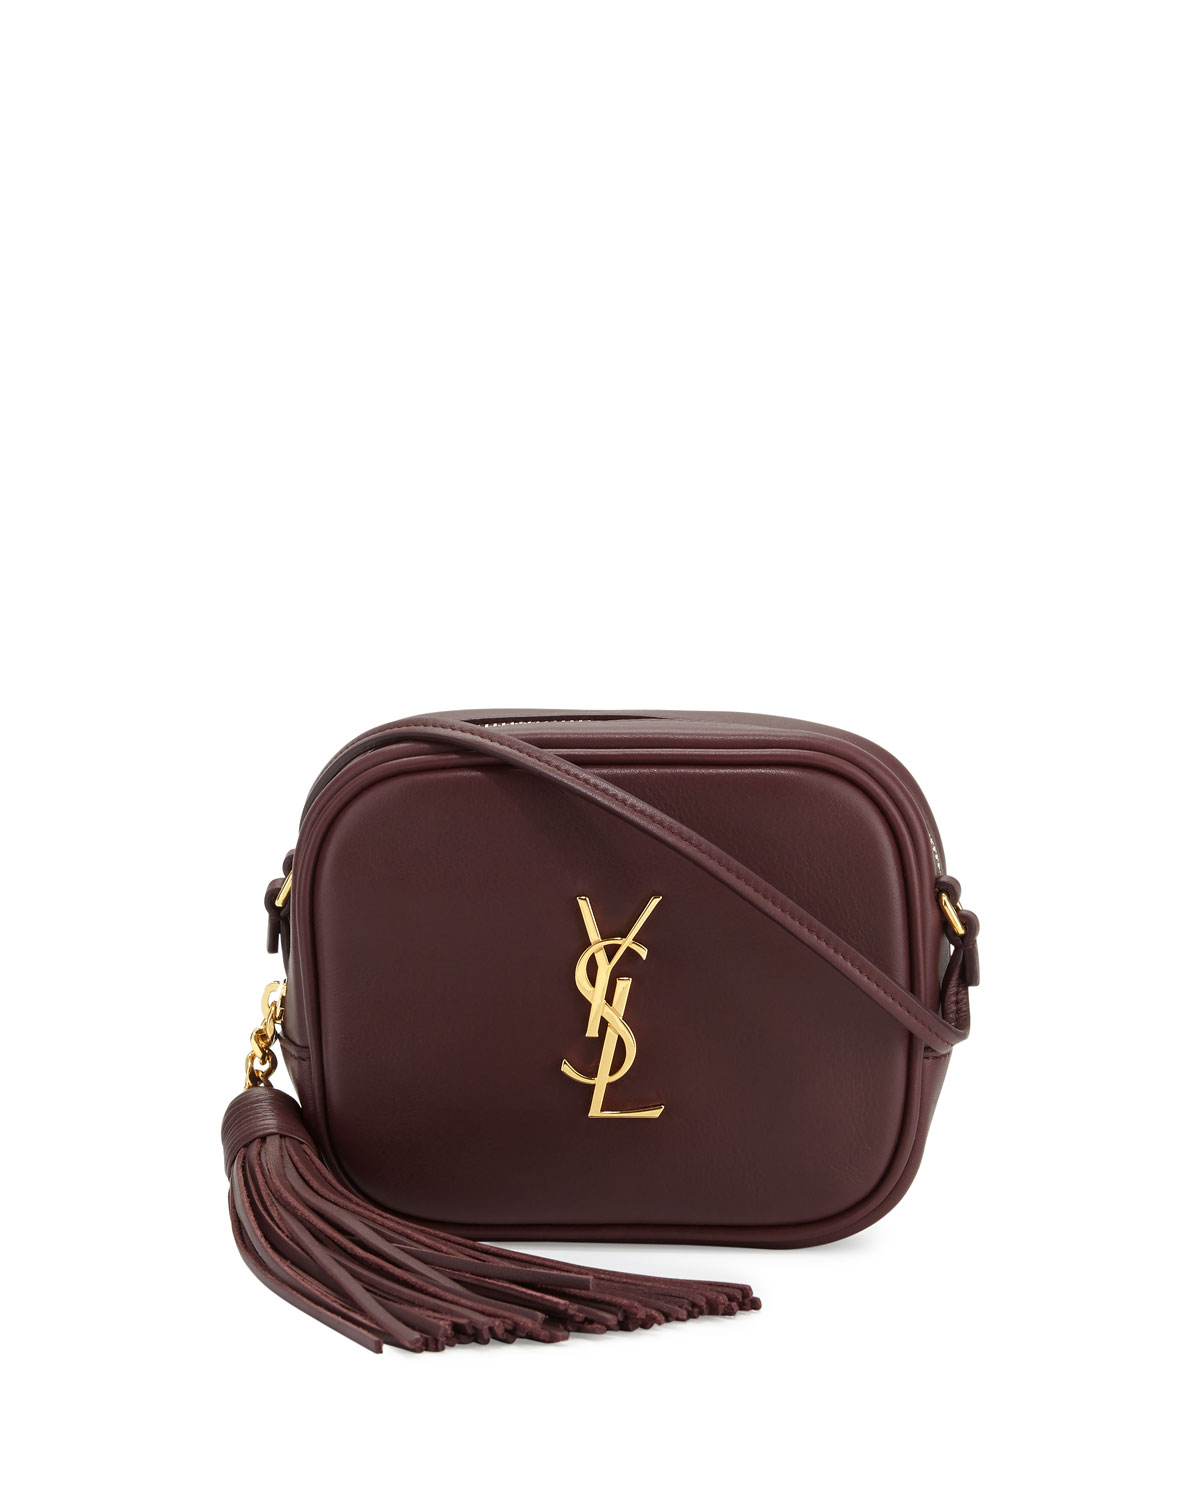 Saint Laurent Monogram Blogger Leather Crossbody Bag 53c5d7e6dba3e